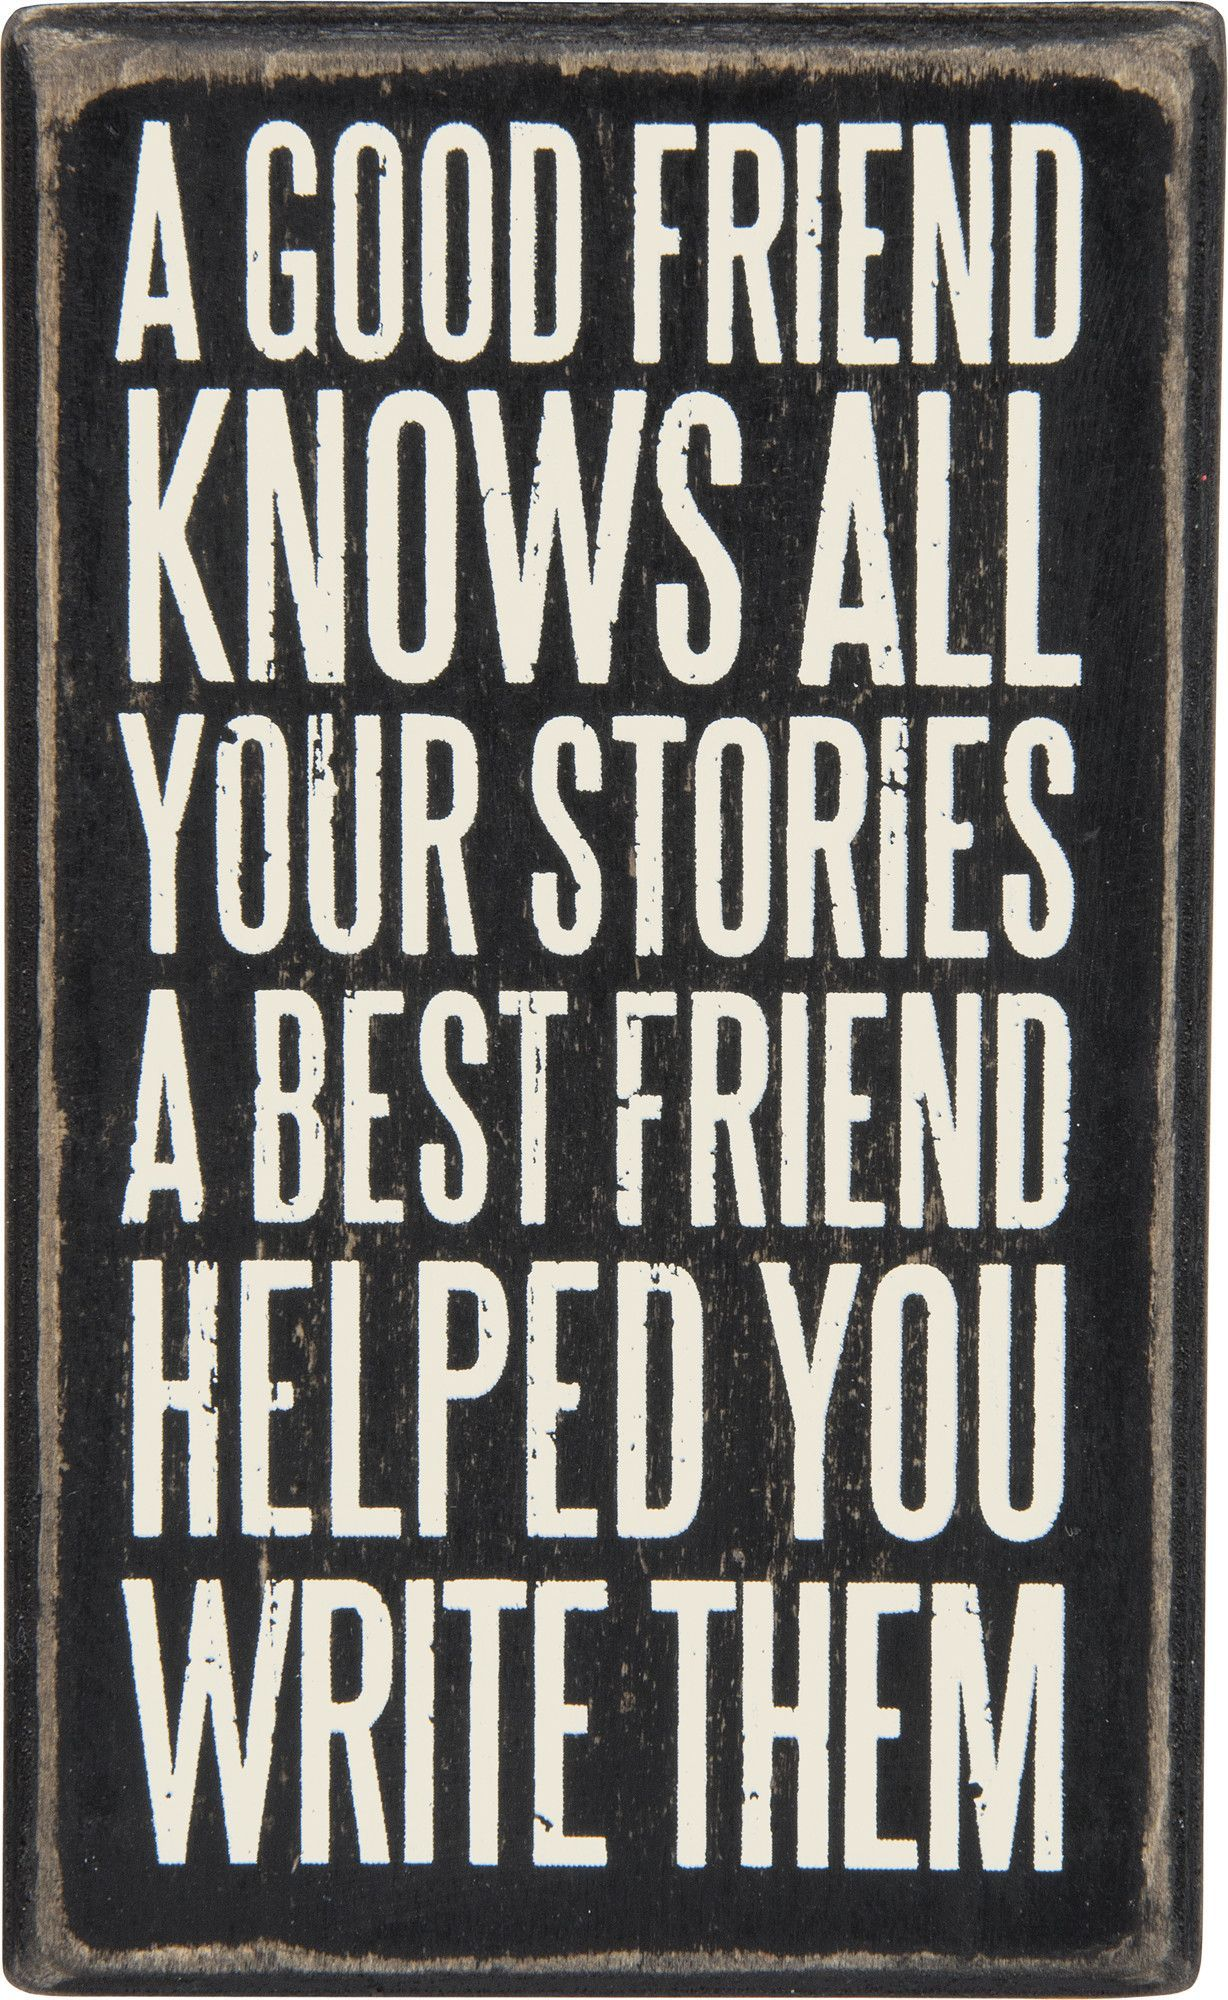 Quotes About Good Friendship A Good Friend Knows All Your Storiesa Best Friend Helped You